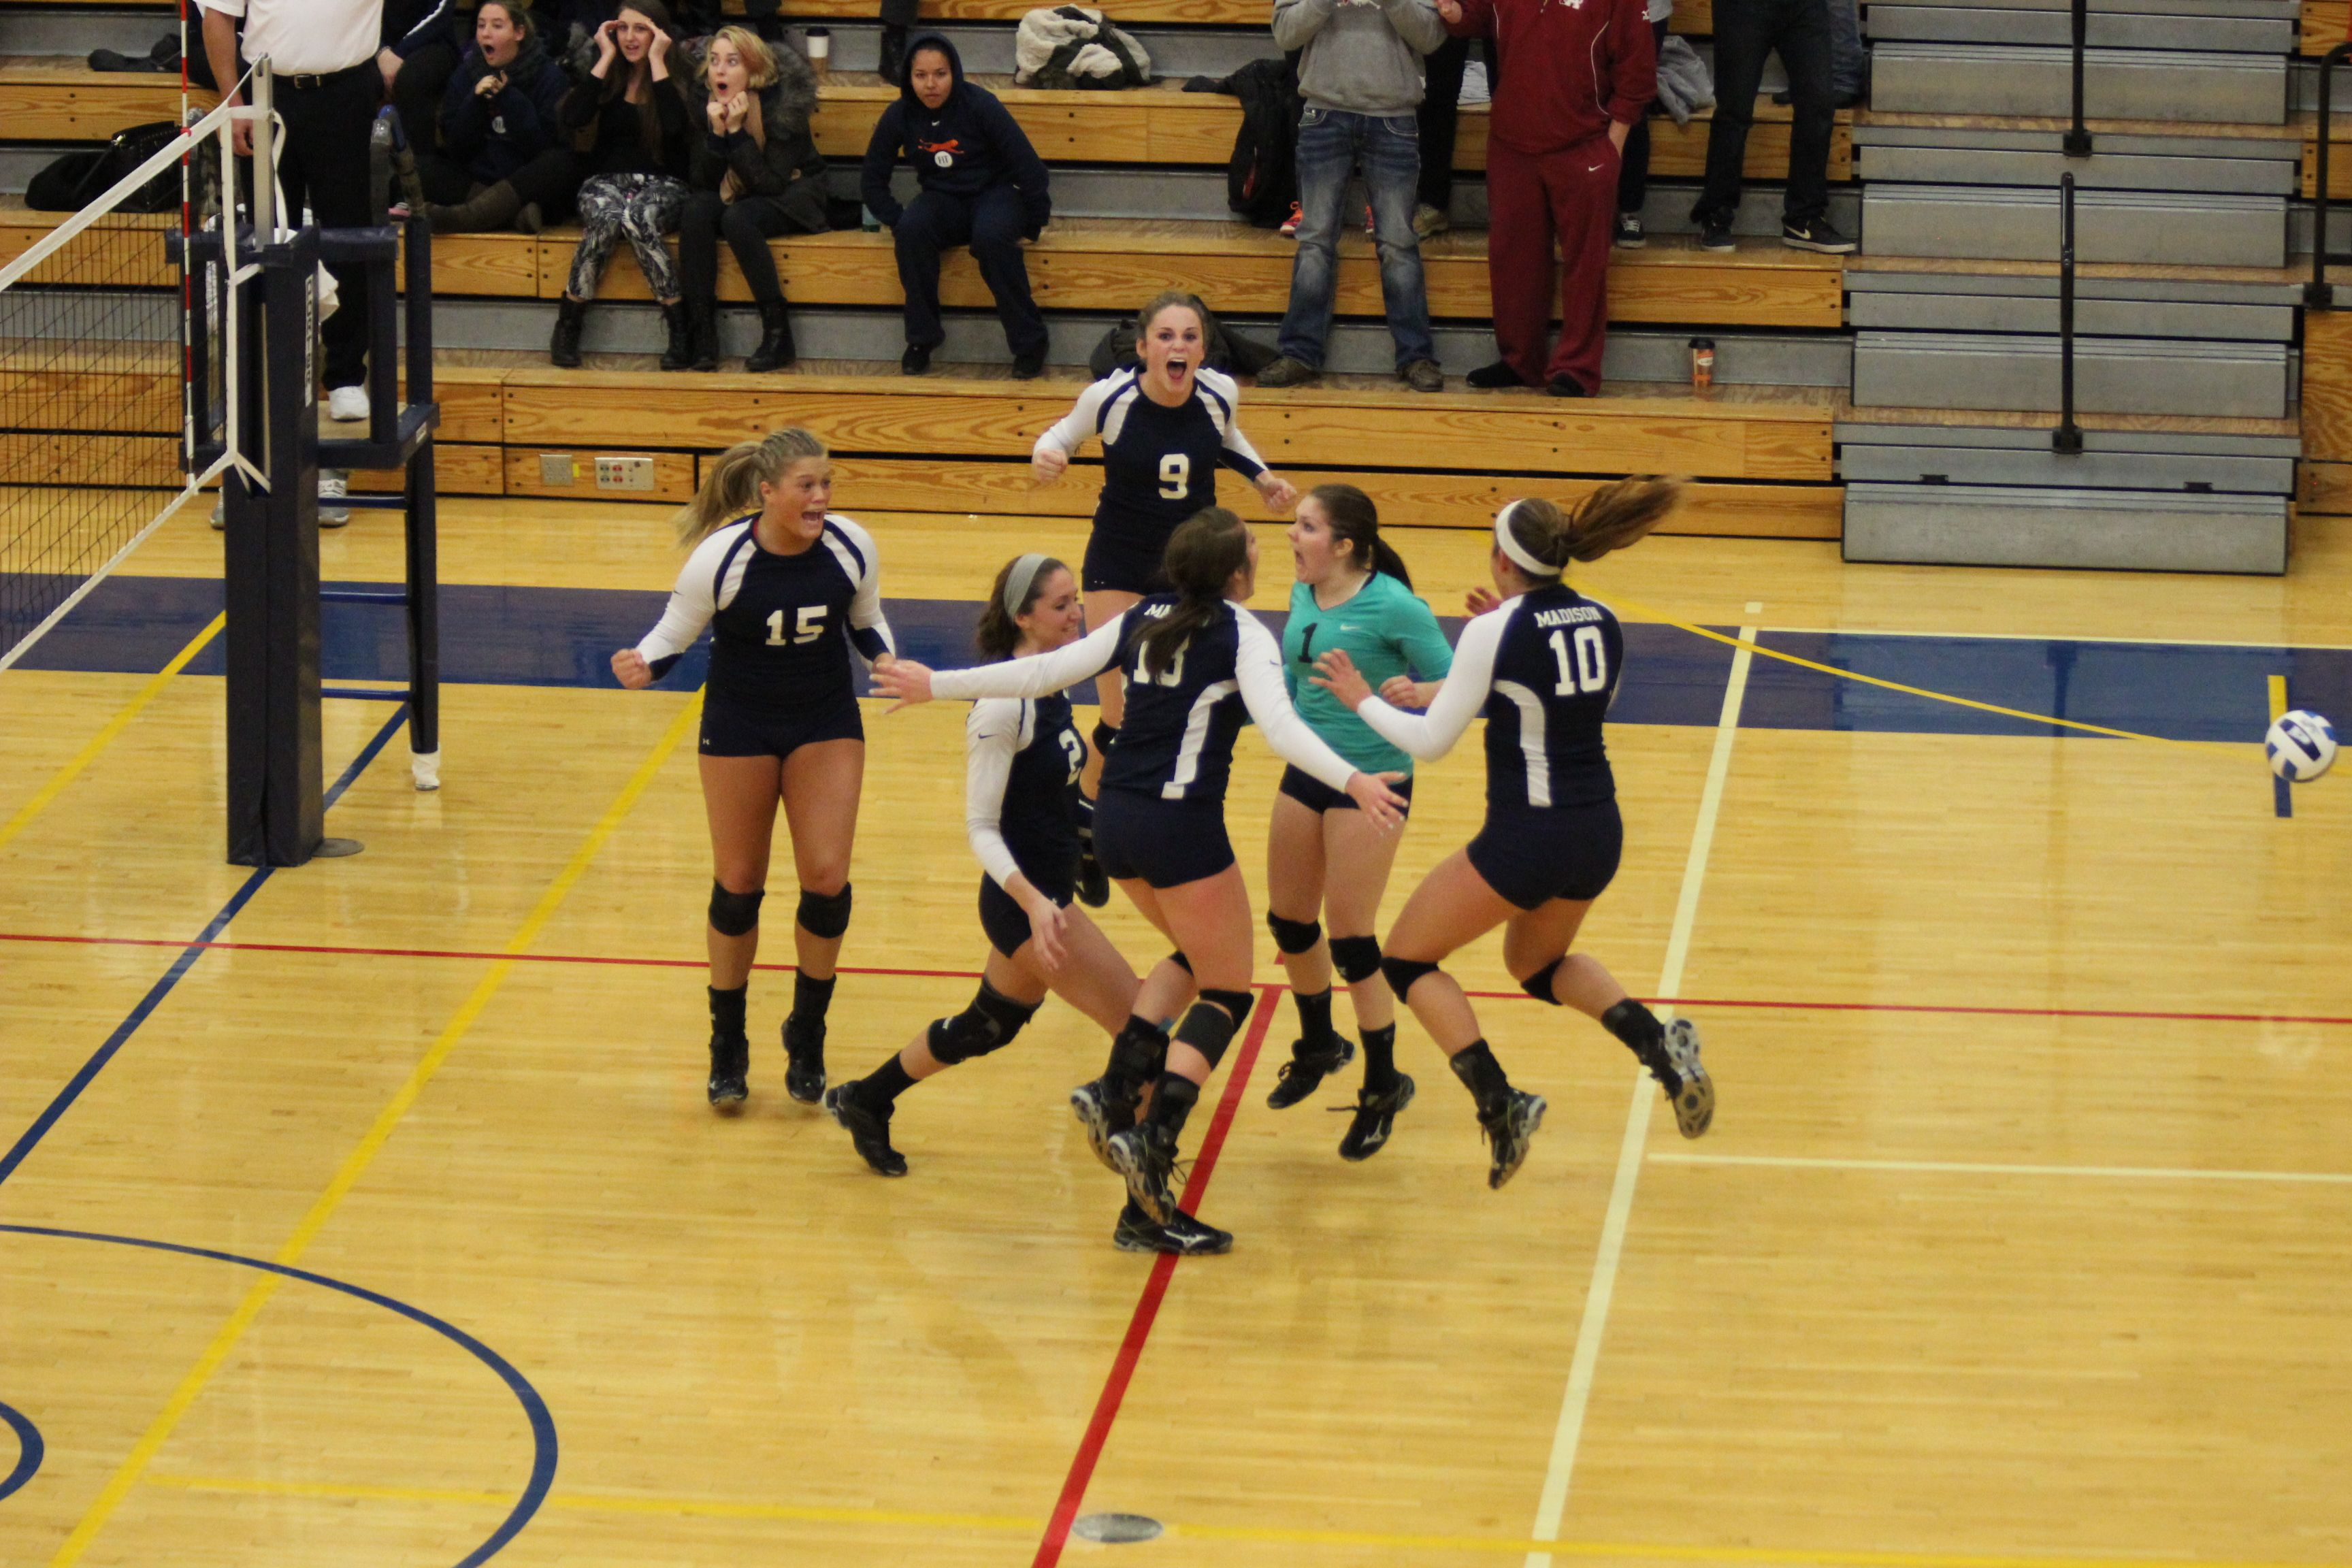 The 2014 Team Celebrates During The Njcaa Diii National Championship Game Against Lorain County Community Coll Women Volleyball Championship Game Lorain County